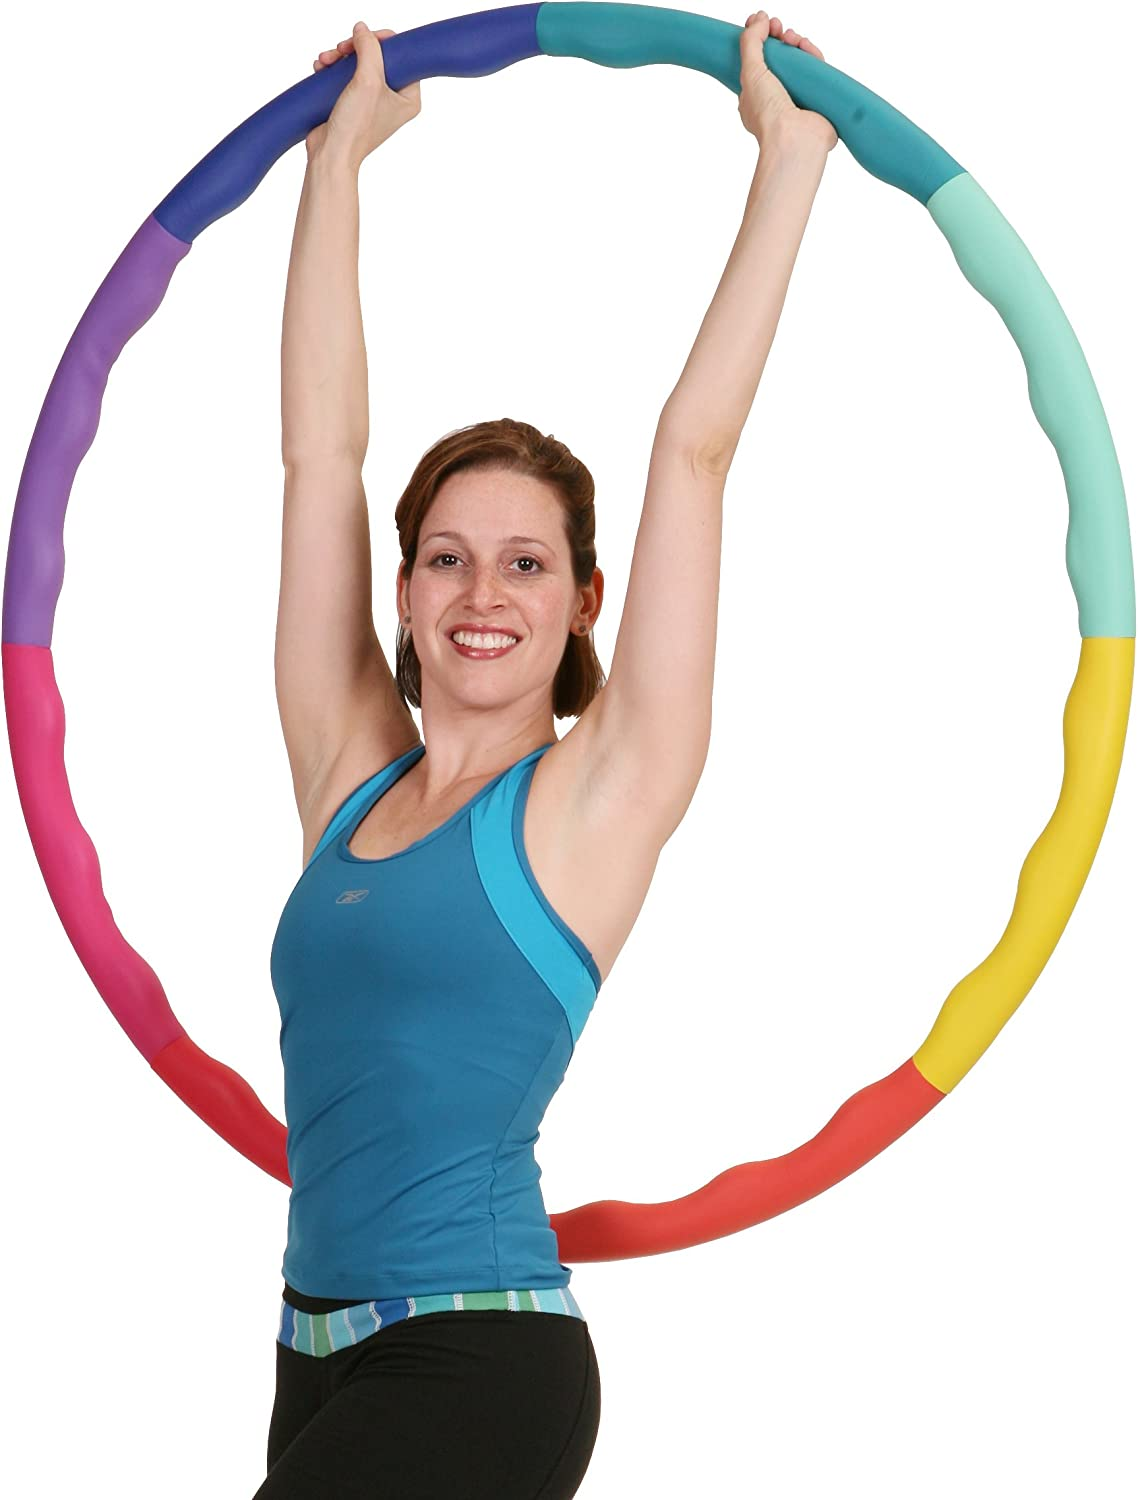 5 LB Weighted weight lossHula Hoop   for Exercise,Fitness workout Health Hoop®